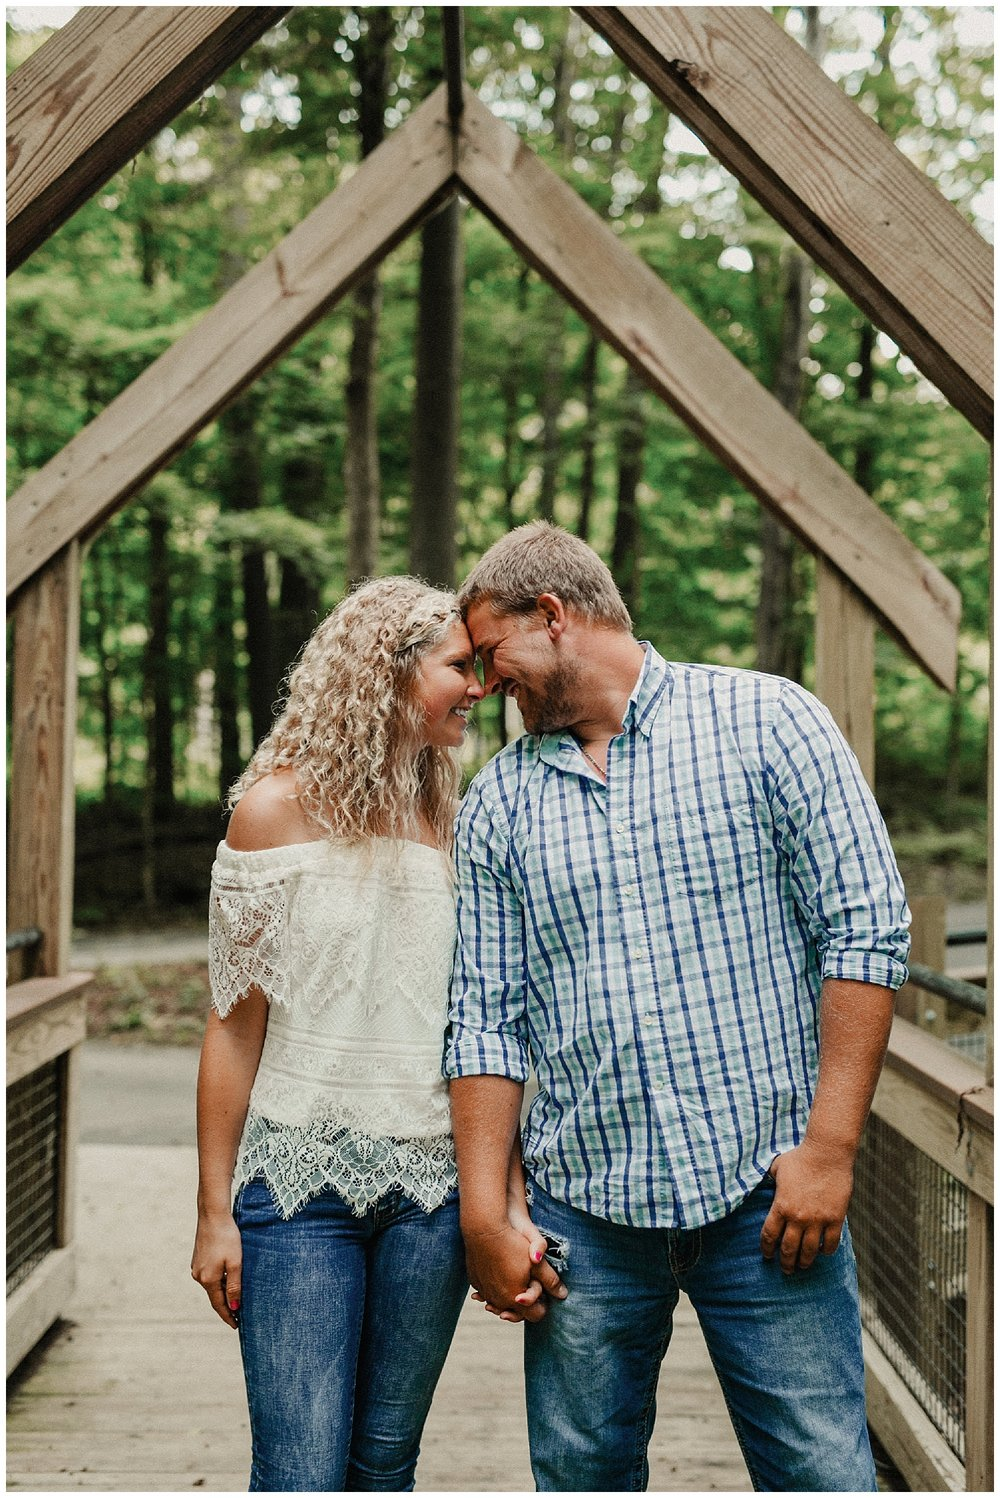 lindybeth photography - engagement pictures - nikki dayton-107.jpg